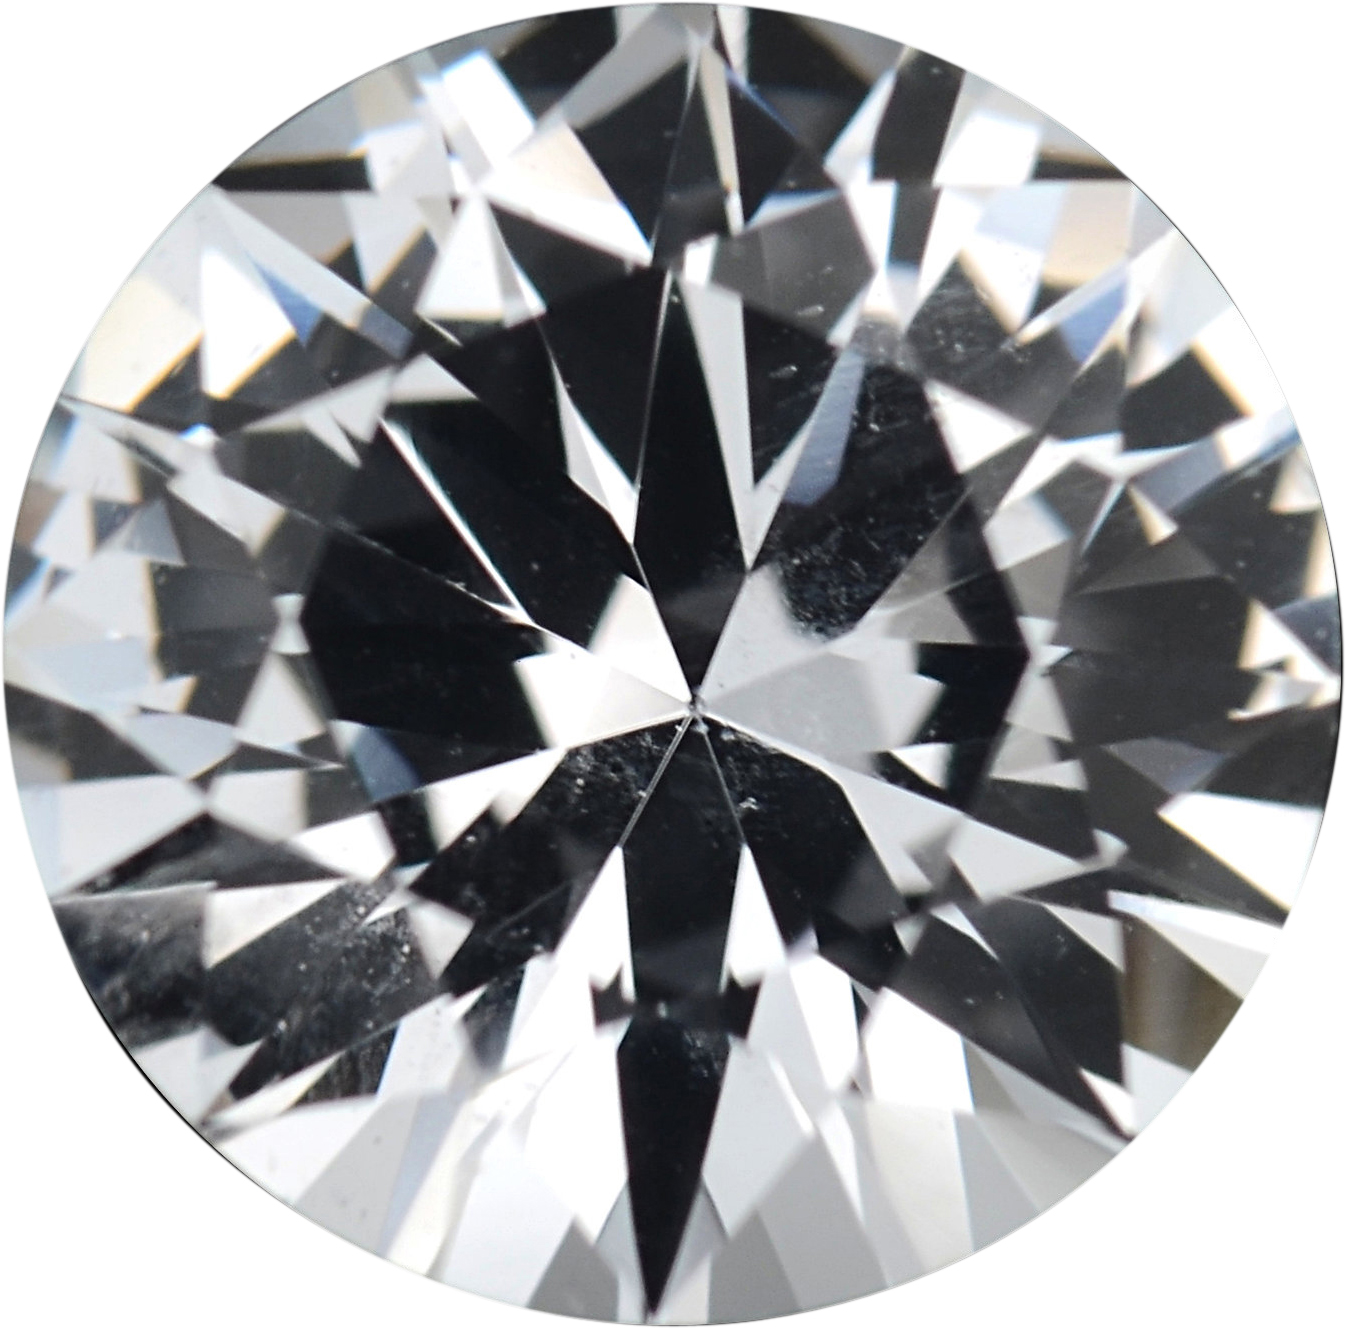 1.36 carats White Loose Sapphire Gemstone in Round Cut, 6.8 mm